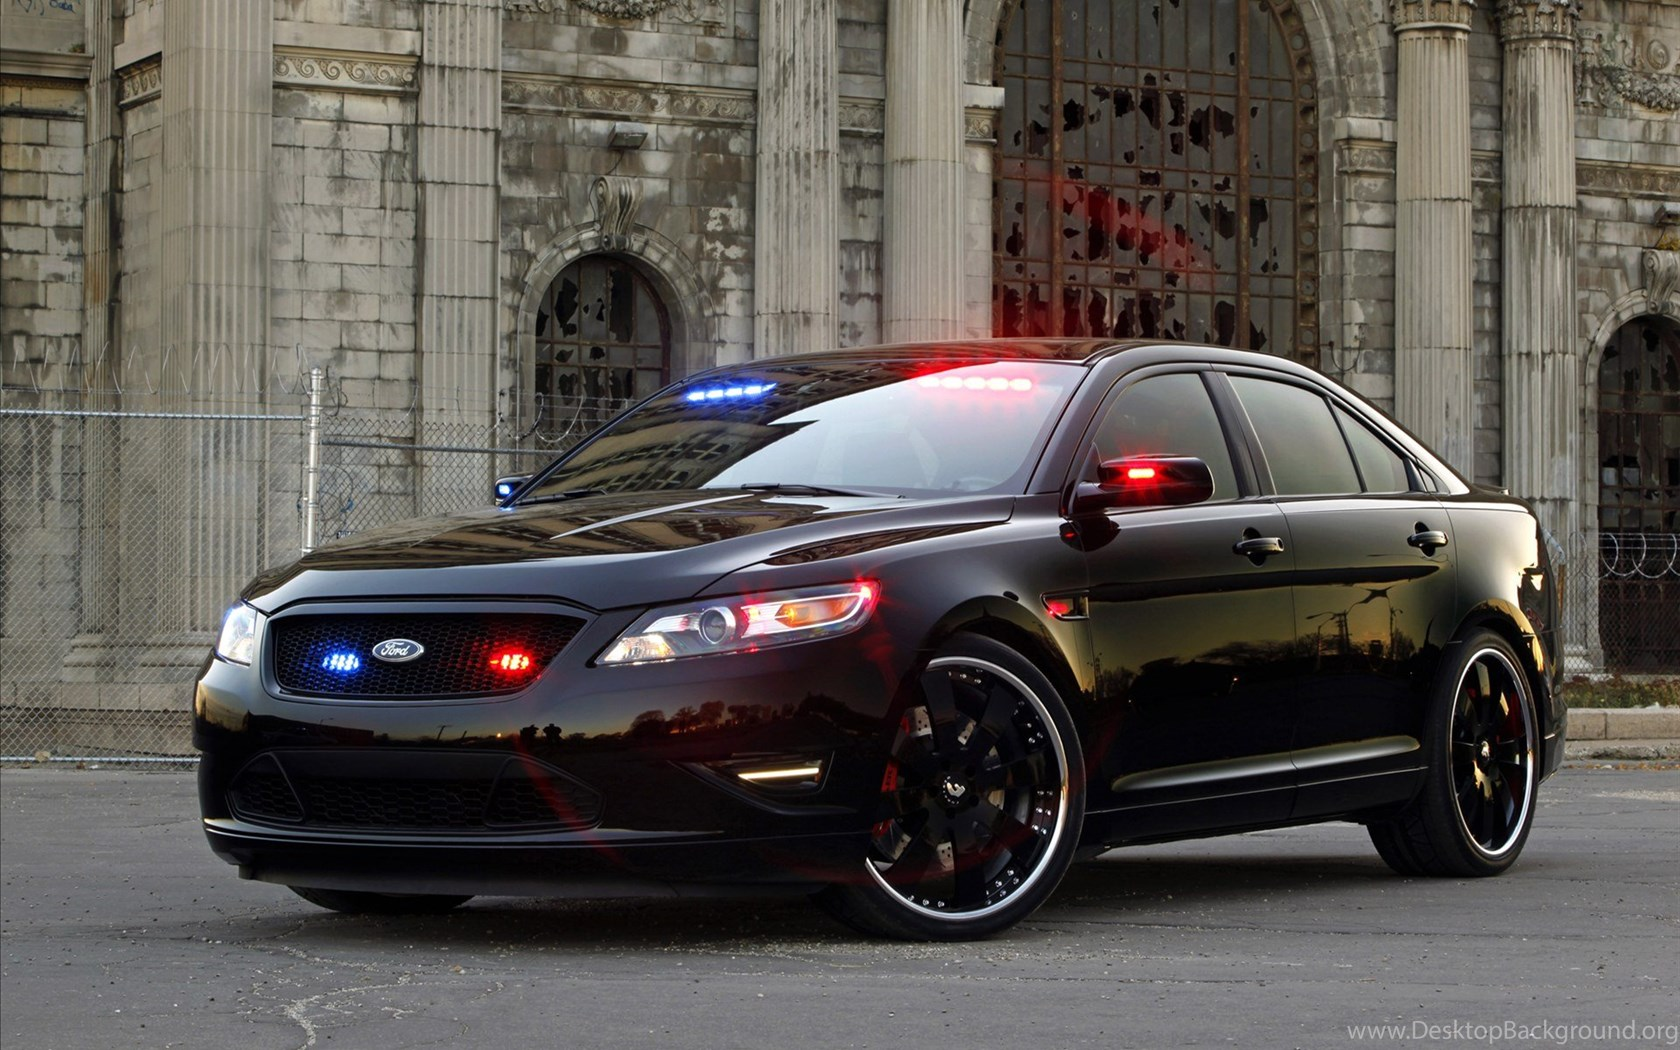 police car wallpapers hd for desktop desktop background